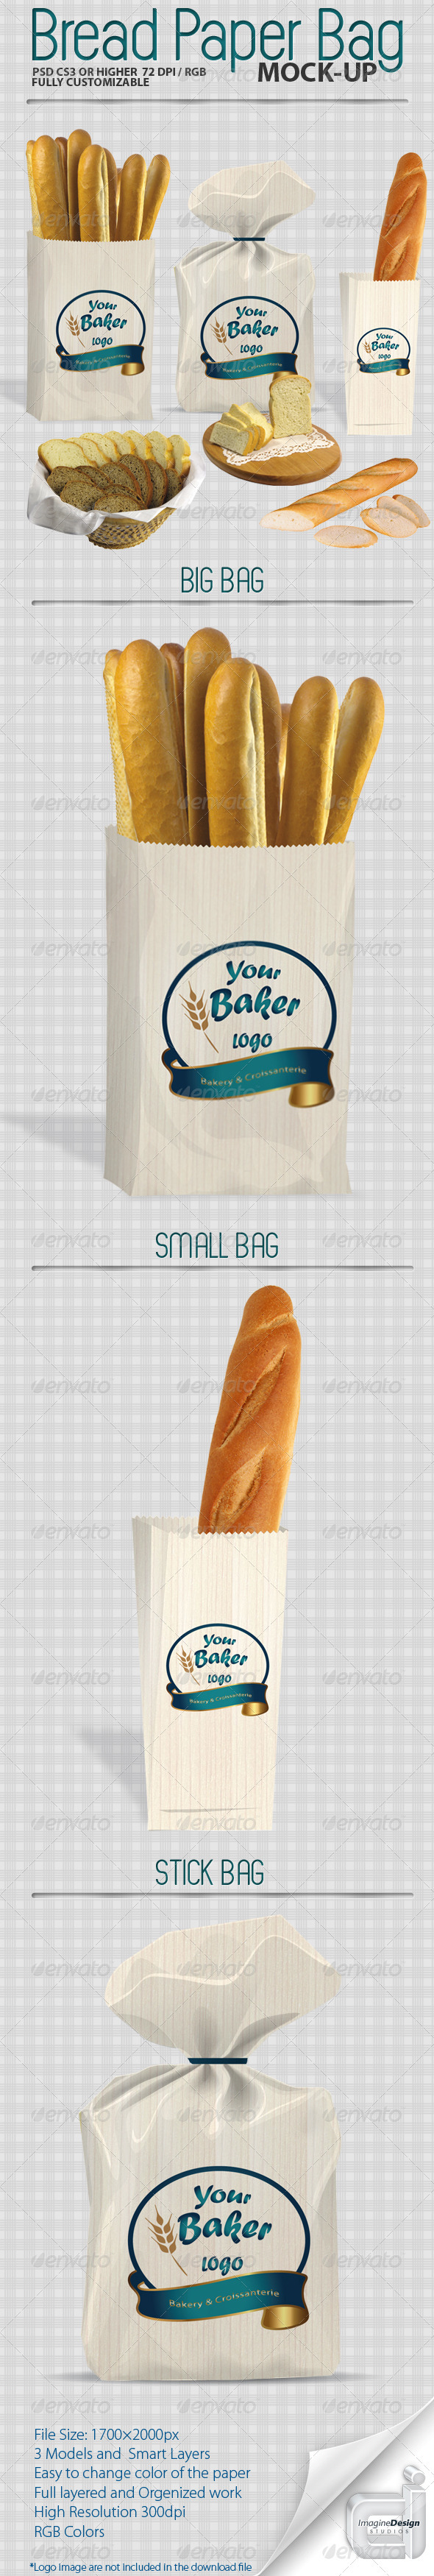 Bread Paper Bag Mock-up - Food and Drink Packaging